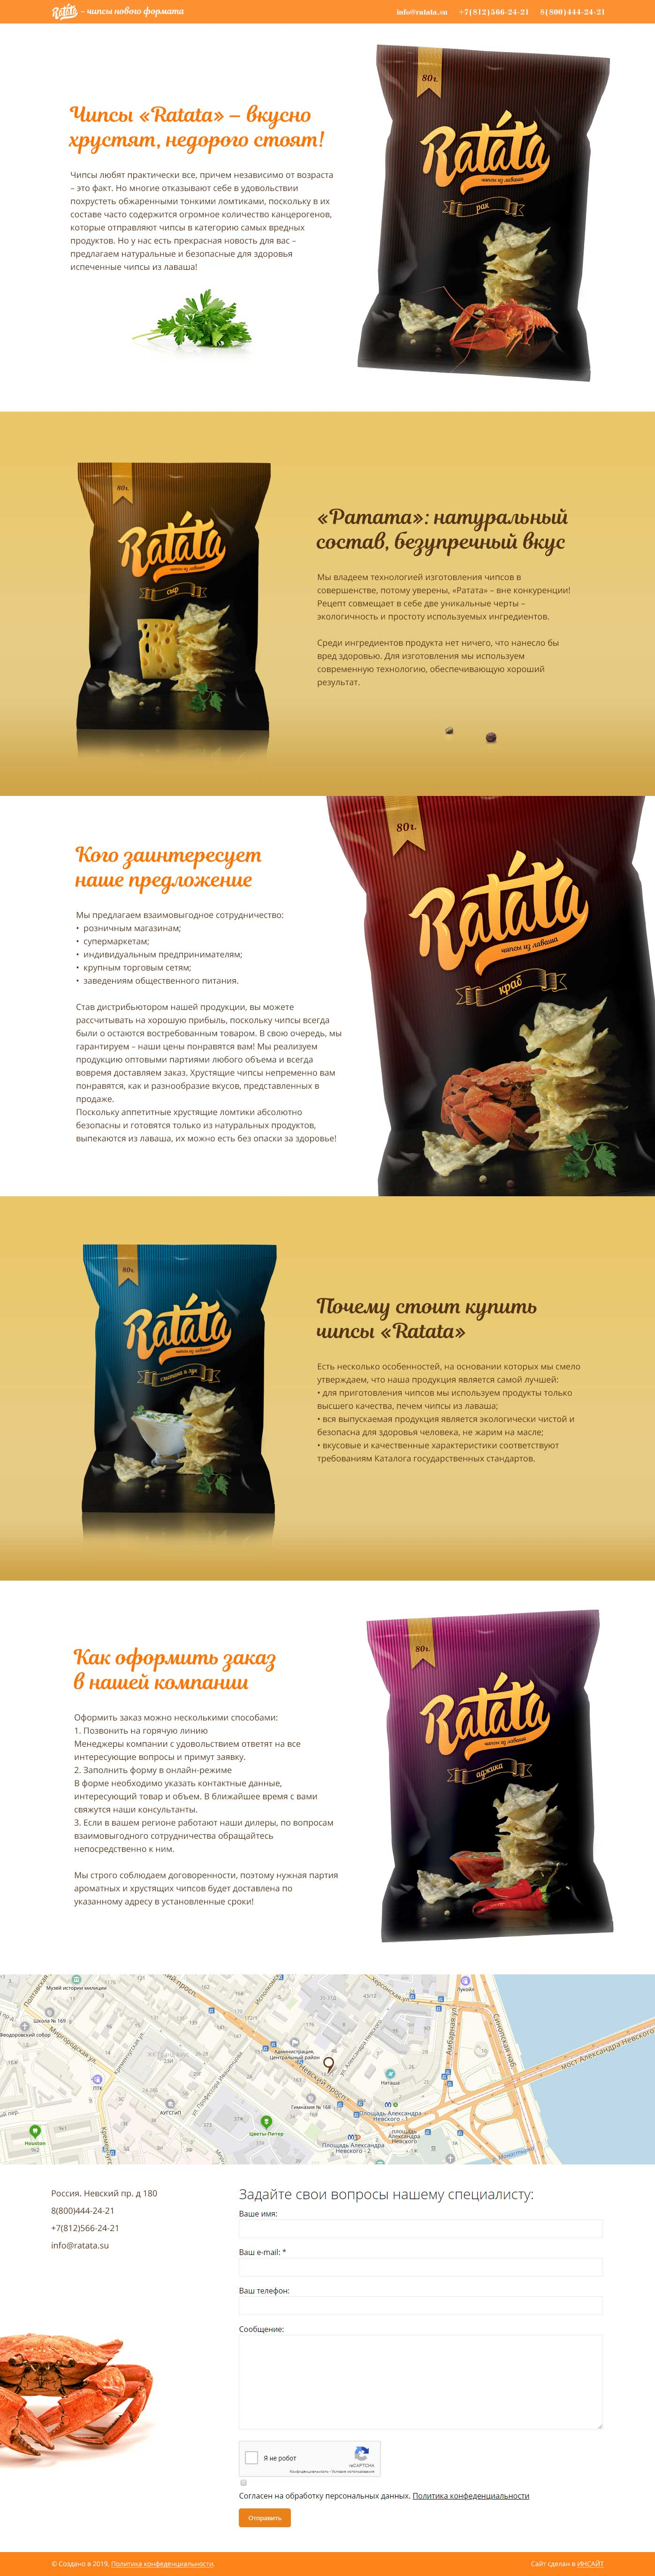 Turnkey Website Ratata - pita chips